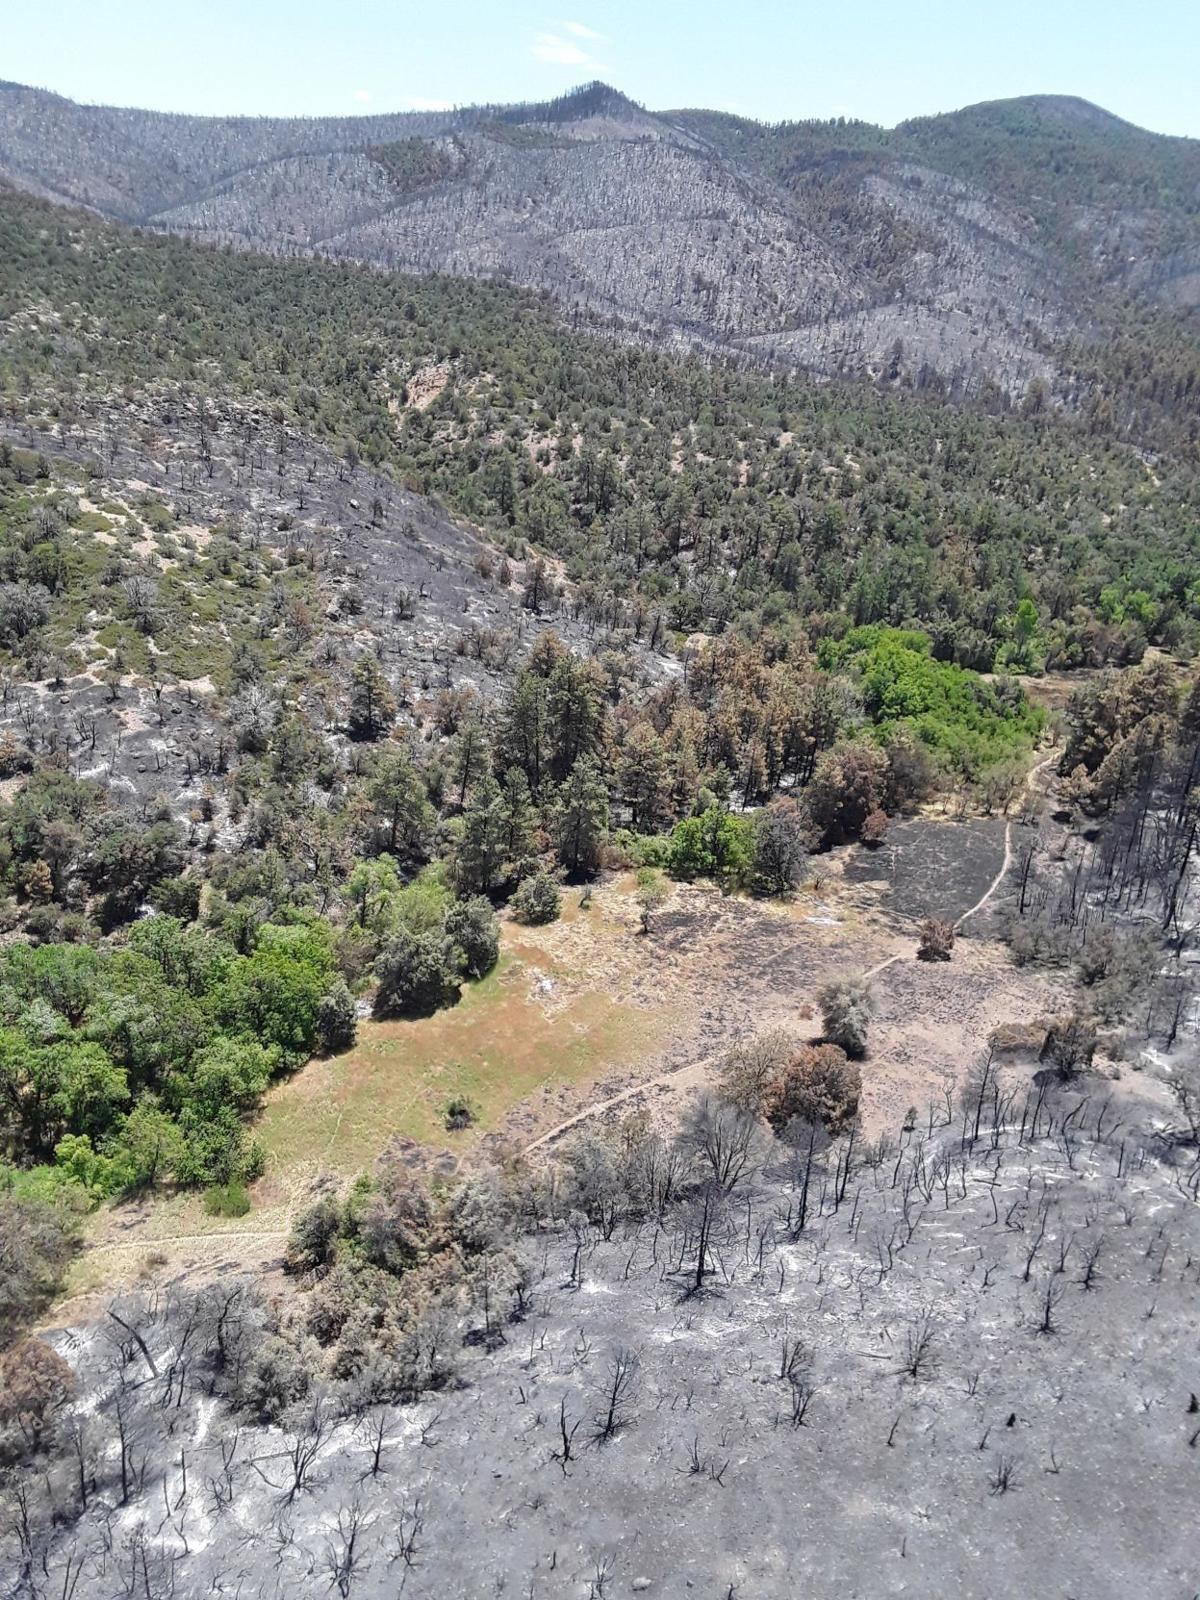 Woodbury Fire - A photograph of Reevis Ranch taken by a BAER team member from a helicopter